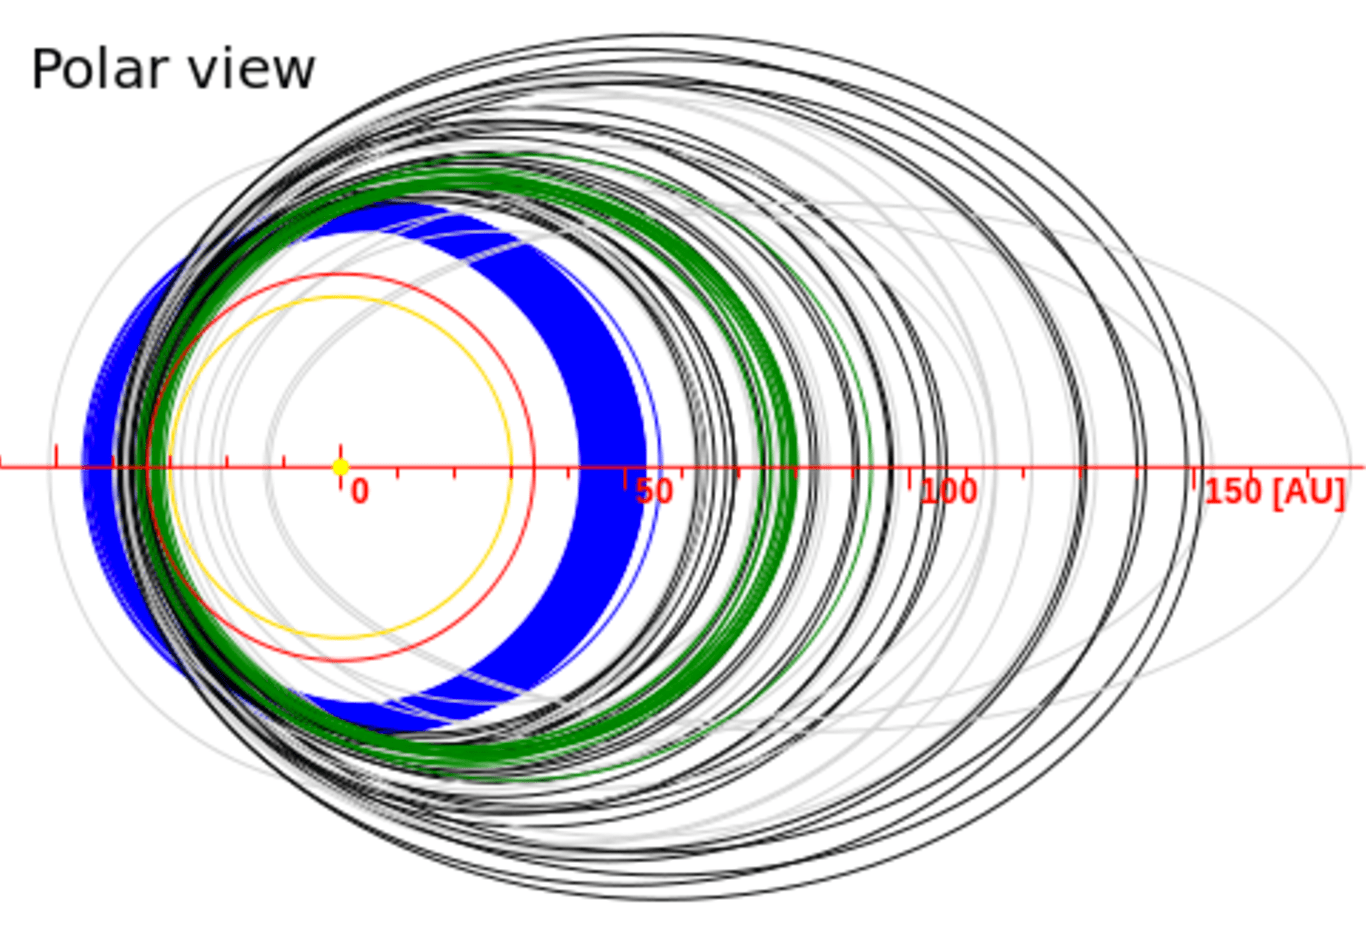 Illustration of the orbits of outer-solar system bodies (with the perihelia co-located on the left for easy comparison). Includes low-eccentricity classical Kuiper belt objects (blue), moderate-eccentricity resonant Kuiper belt objects (green), and high-eccentricity, high-perihelia scattered objects (black). The yellow circle represents Neptune's orbit. [Created 2006 using the Minor Planet Center Orbit database]